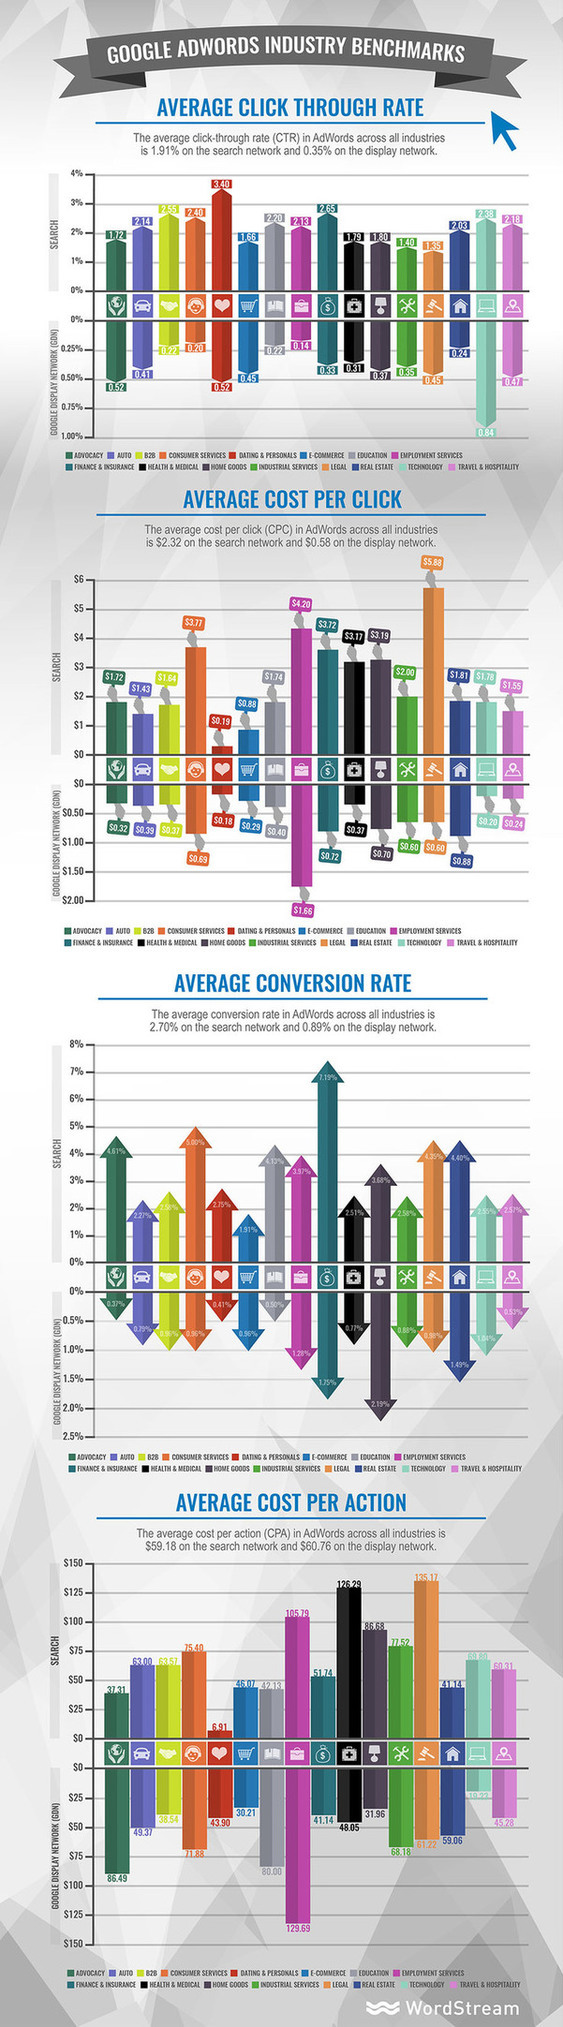 adwords industry benchmarks